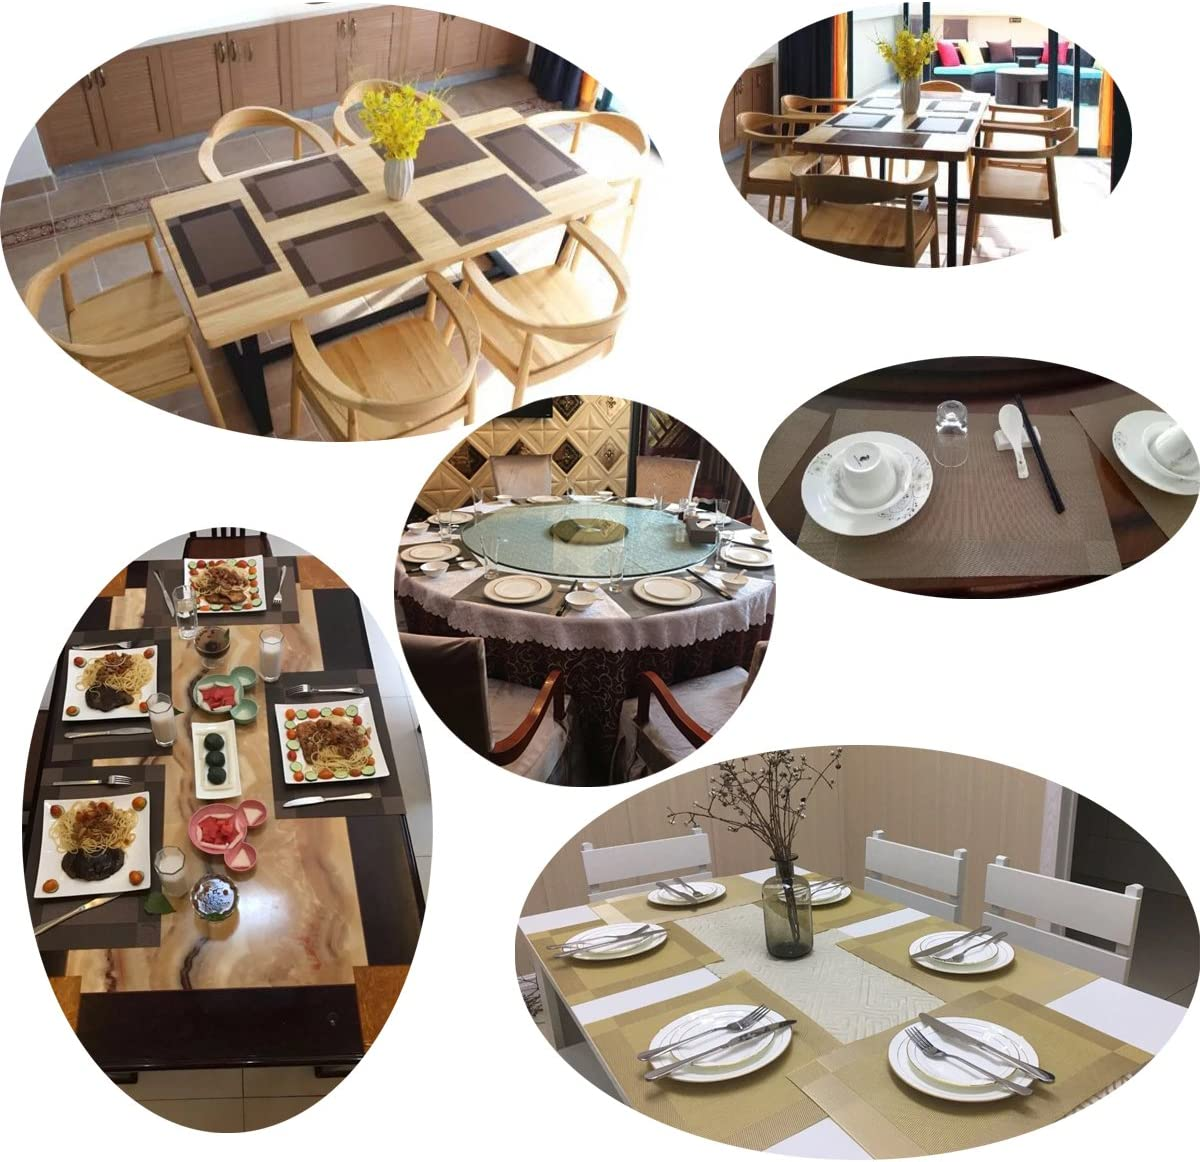 Bright Dream Placemats Washable Easy to Clean Table Mats for Kitchen Table Heat-resistand Woven Vinyl PVC Placemat 12x18 inches Set of 6(Brown) : Home & Kitchen